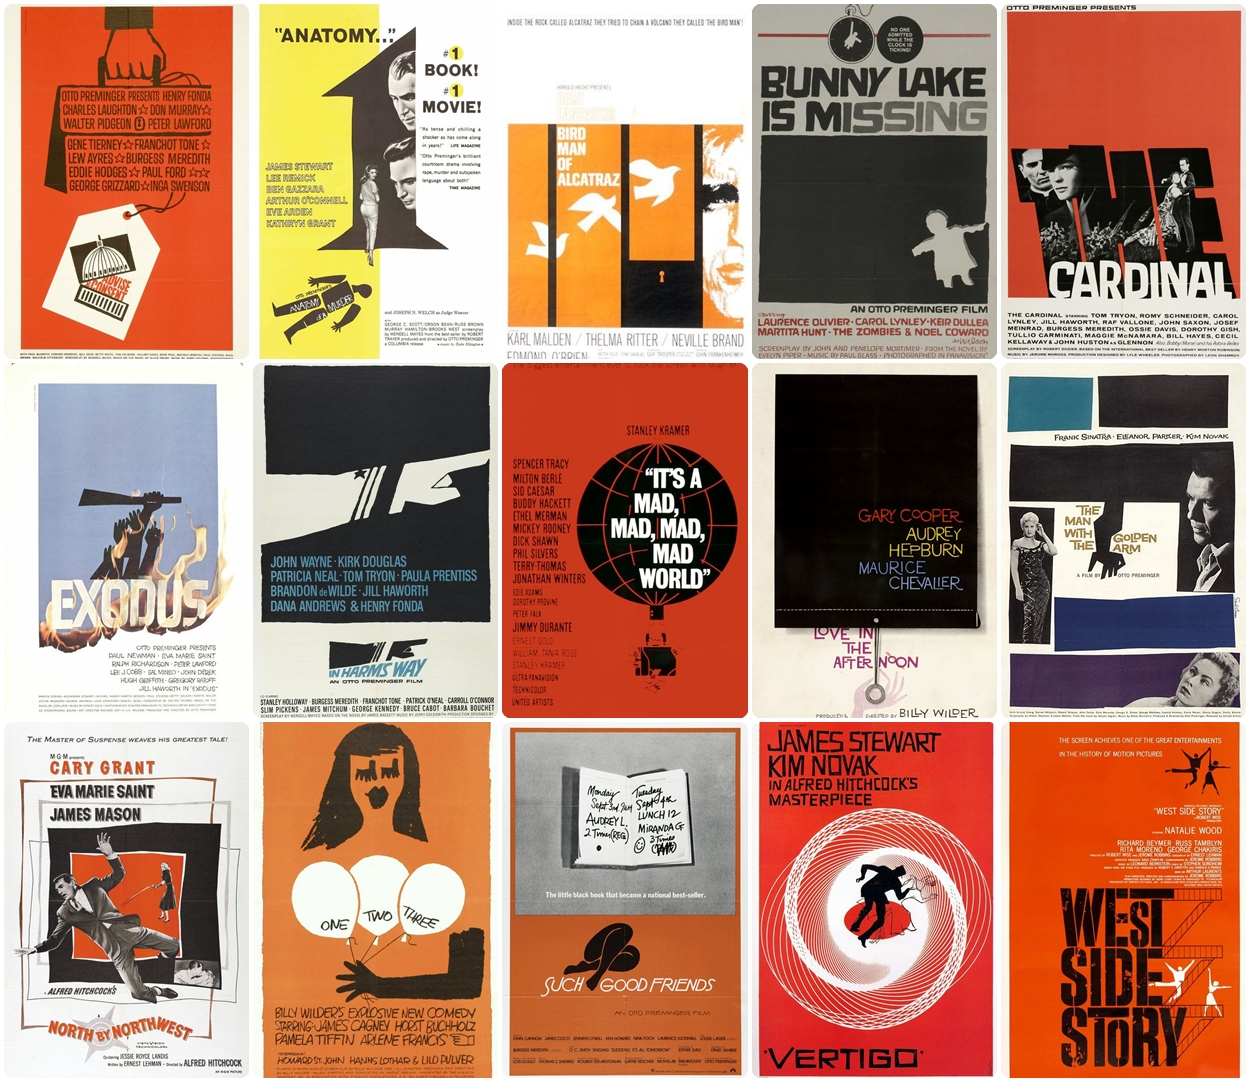 L'art de Saul Bass